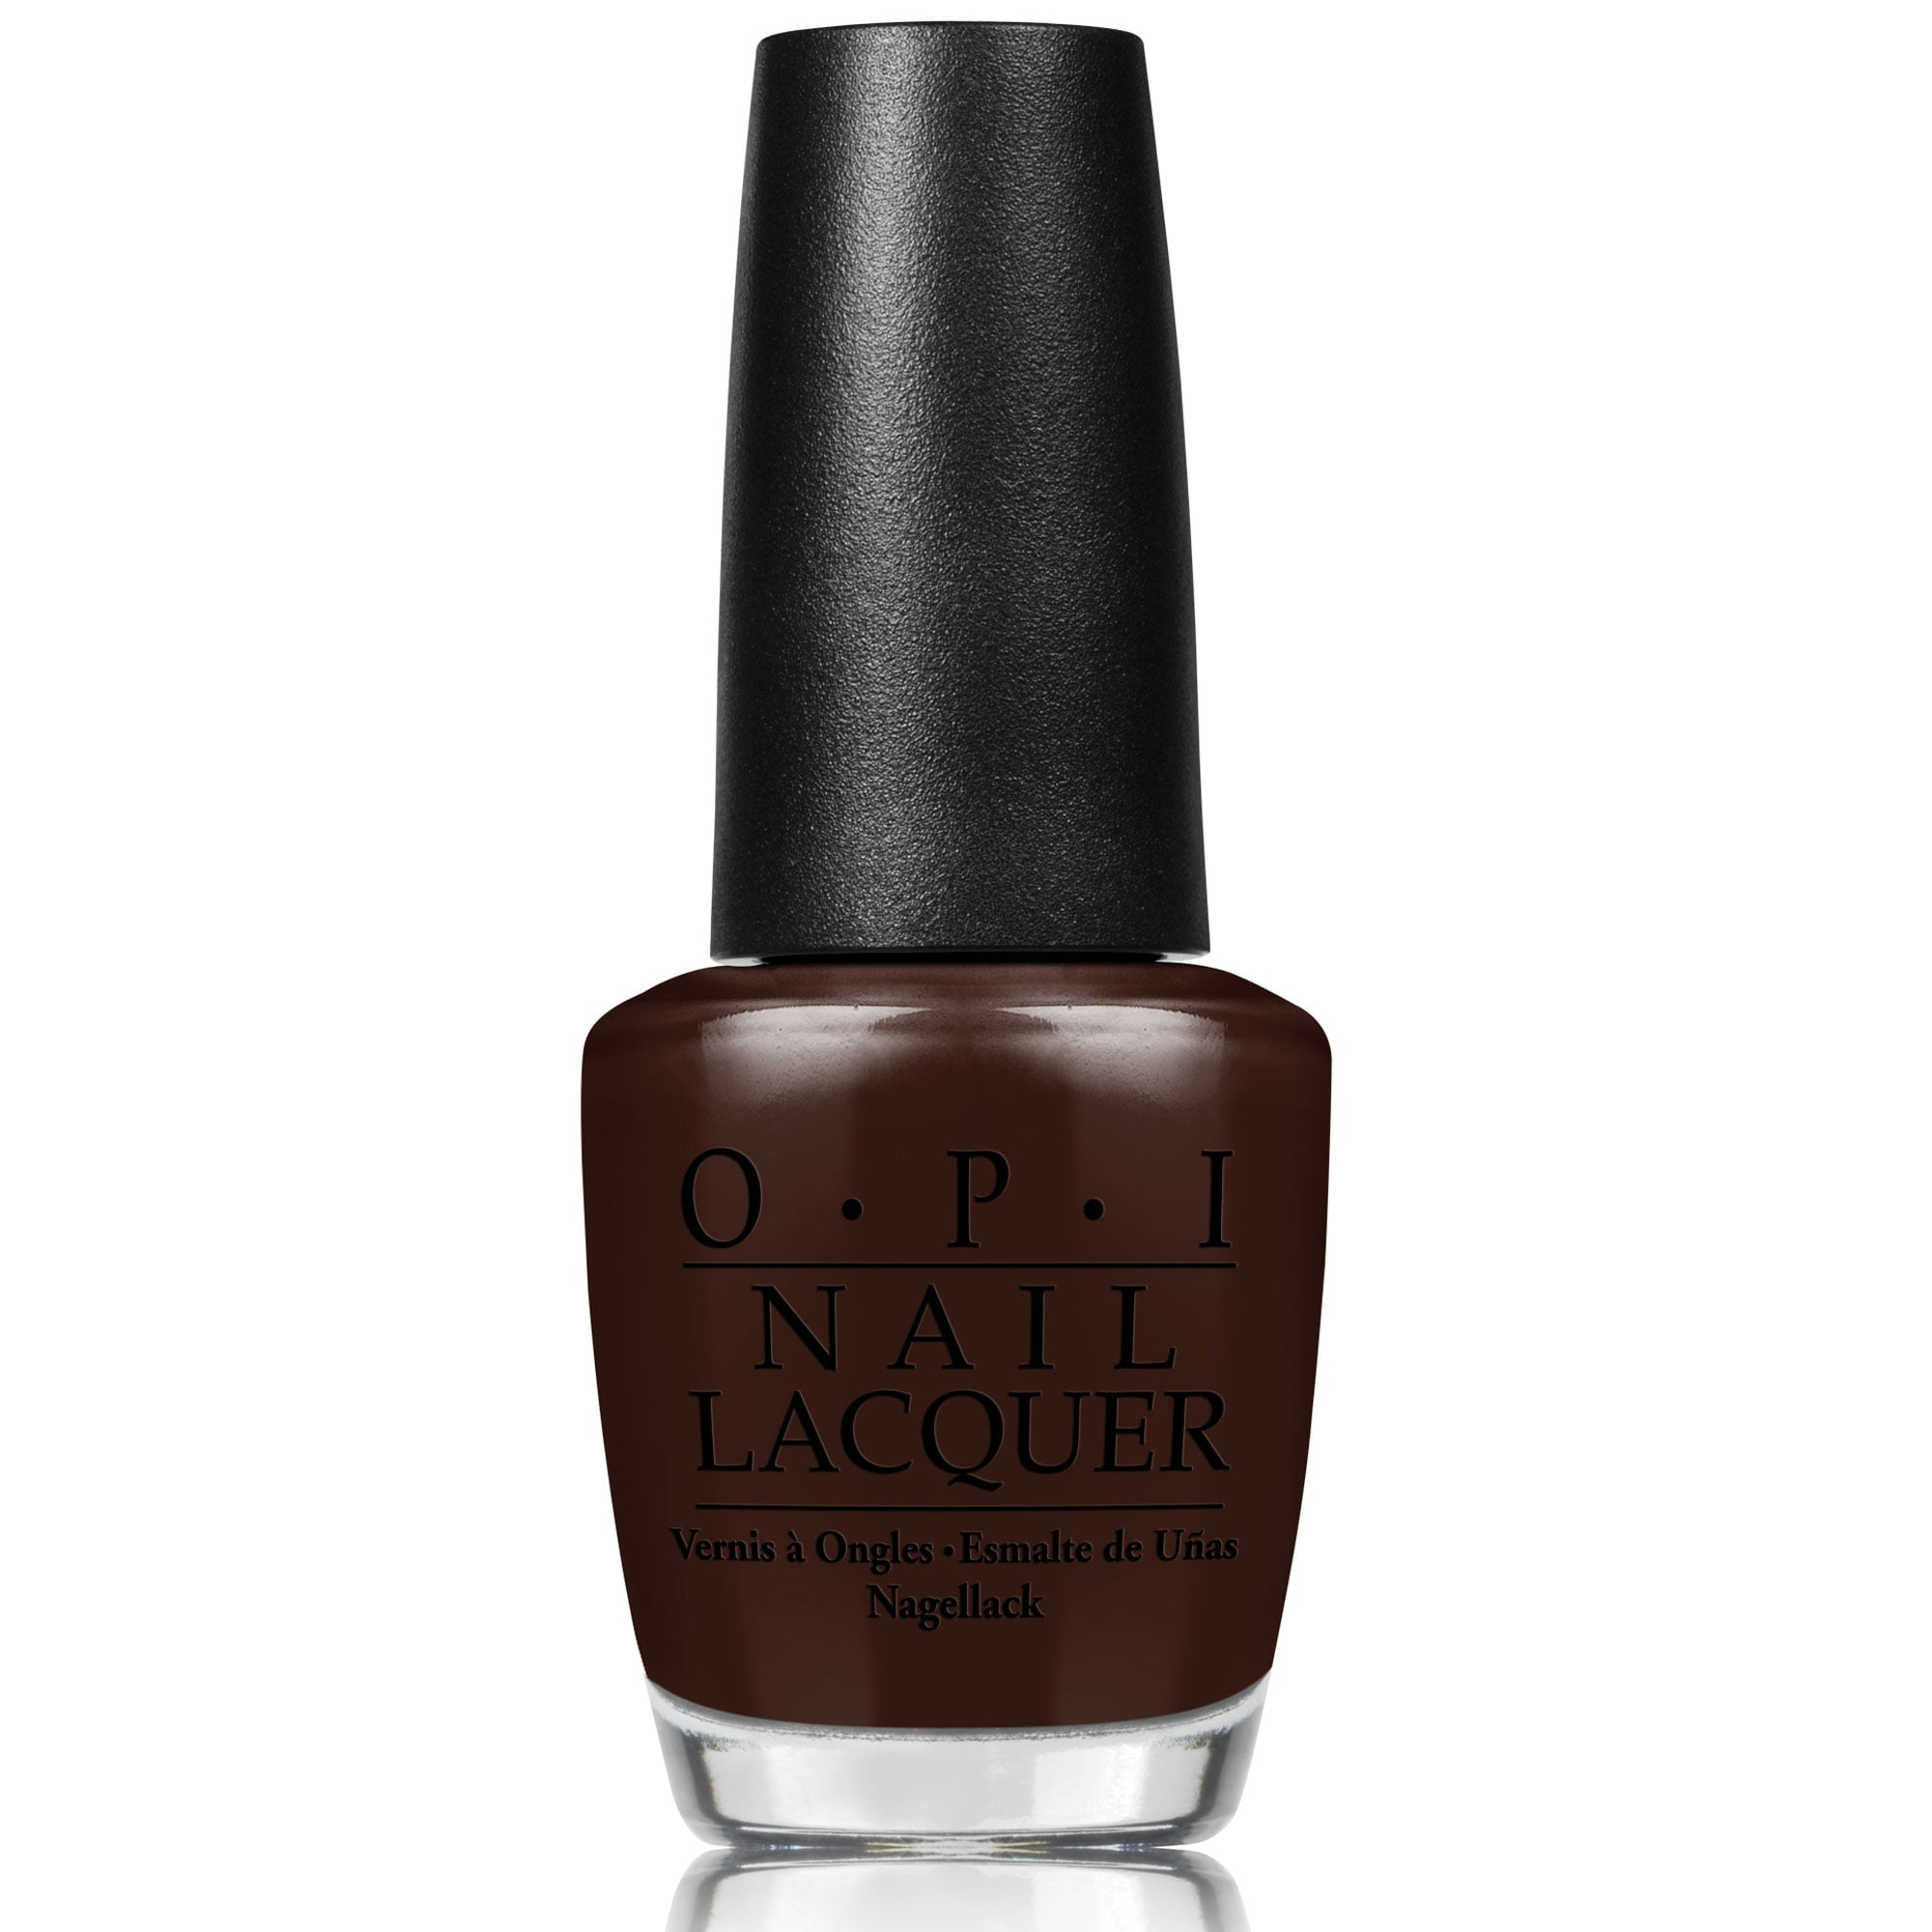 Shh Its Top Secret!-OPI-UK-Wholesaler-Supplier-queenofnailscouk